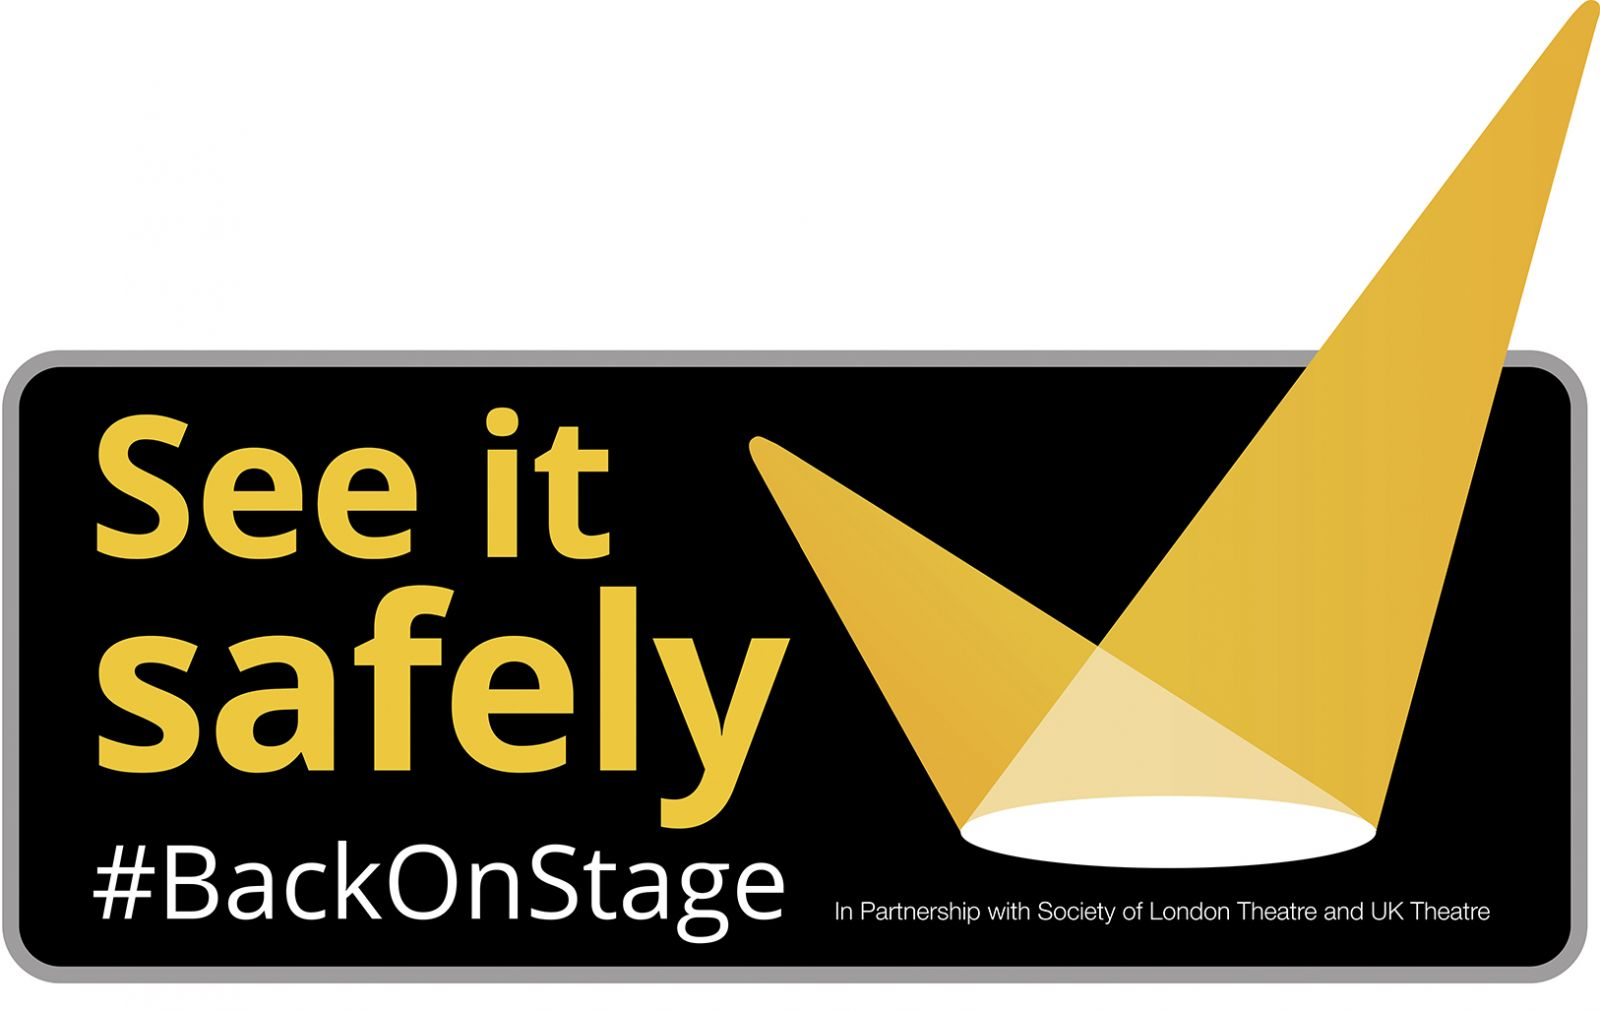 The See It Safely logo from SOLT and UK Theatre, which also reads #BackOnStage